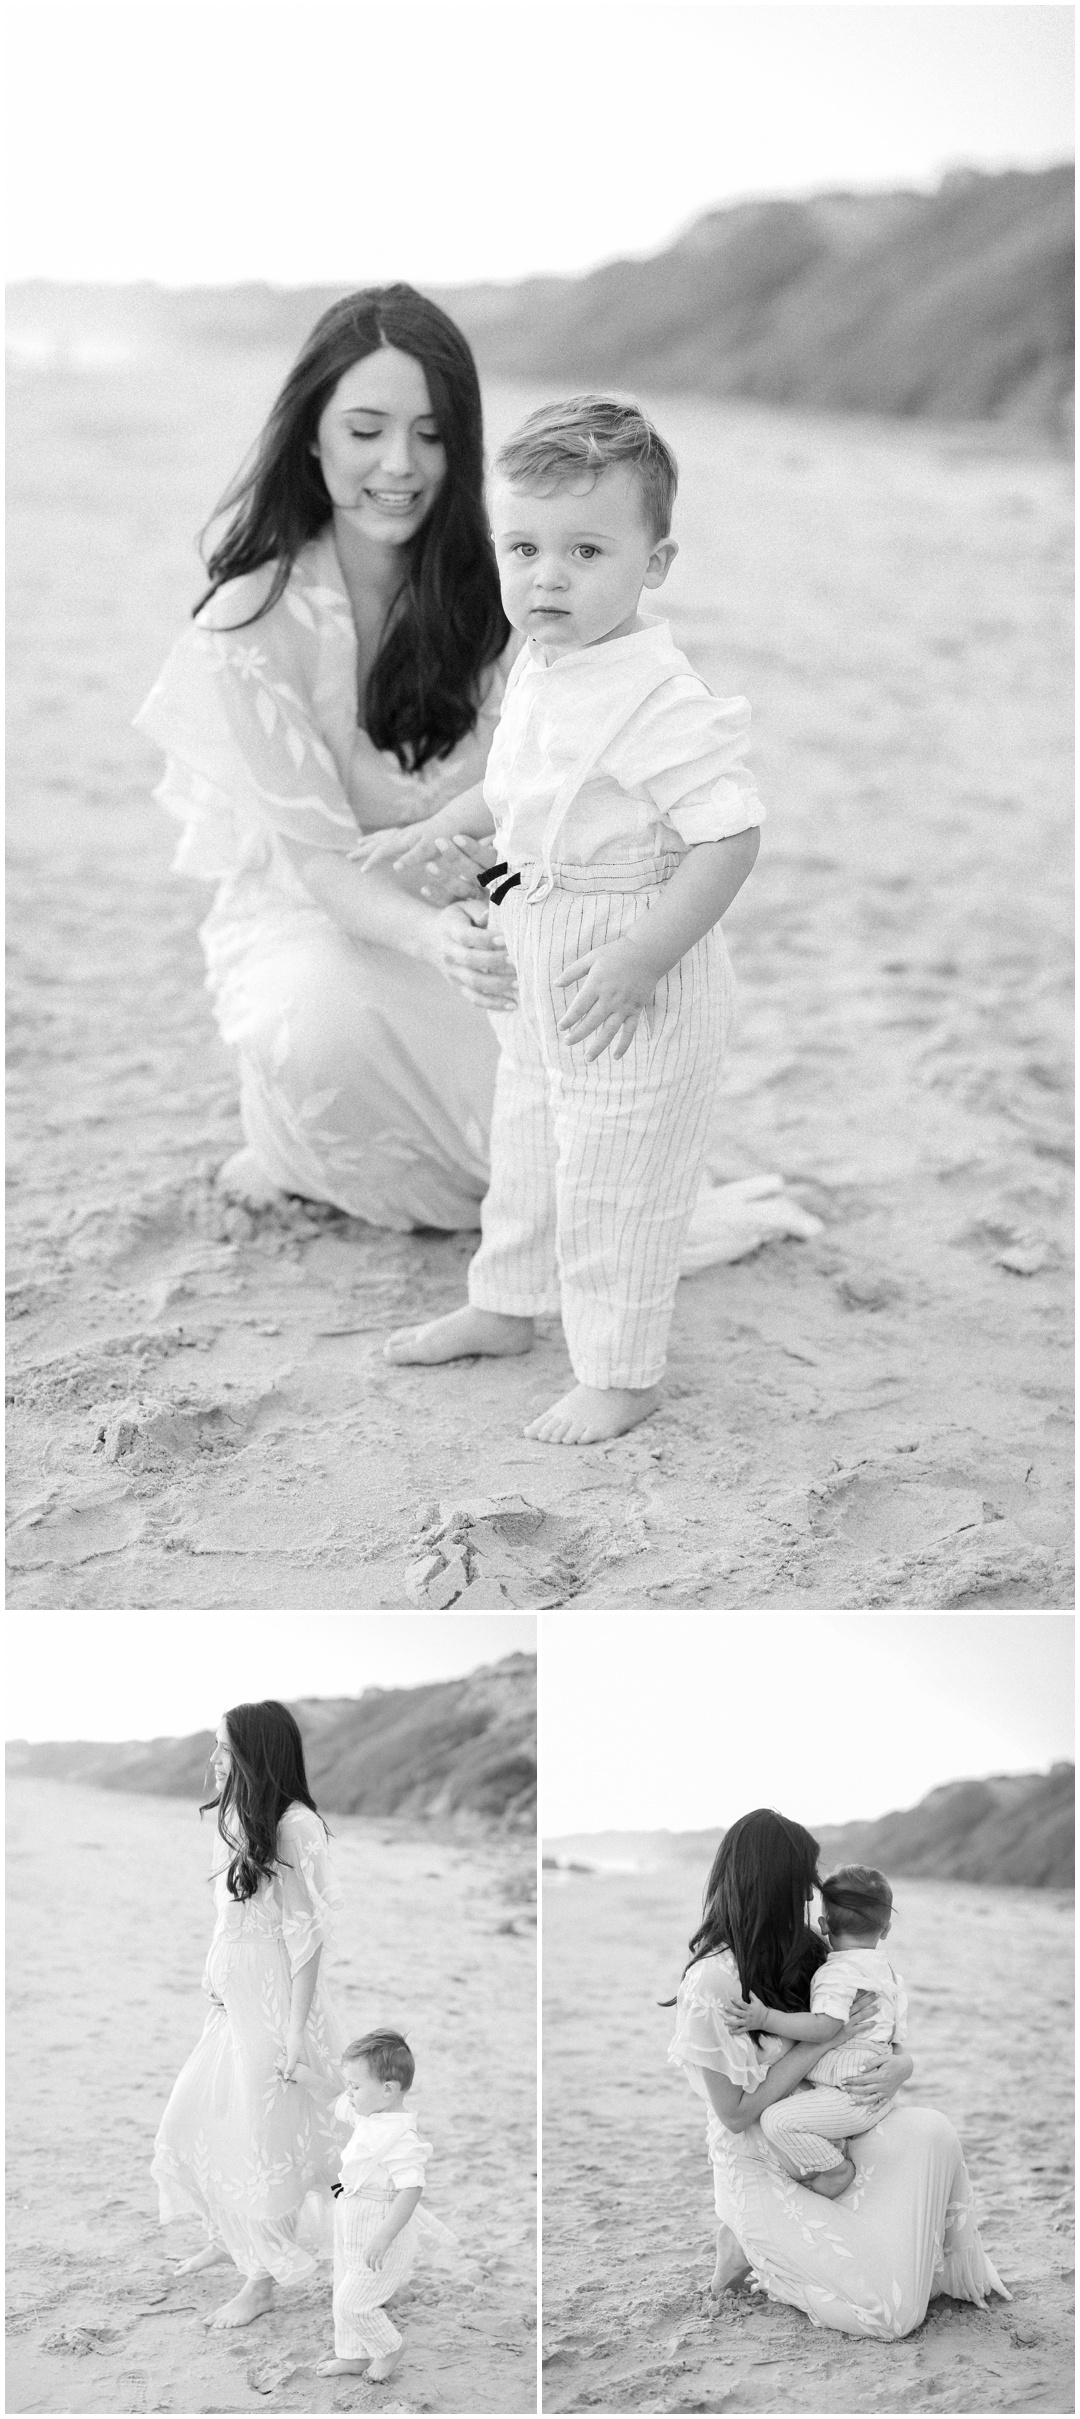 Newport_Beach_Newborn_Light_Airy_Natural_Photographer_Newport_Beach_Photographer_Orange_County_Family_Photographer_Cori_Kleckner_Photography_Huntington_Beach_Photographer_Family_OC_Newborn_Danielle_Lawley_Parker_Maternity_Family_Jordan_Lawley_3352.jpg